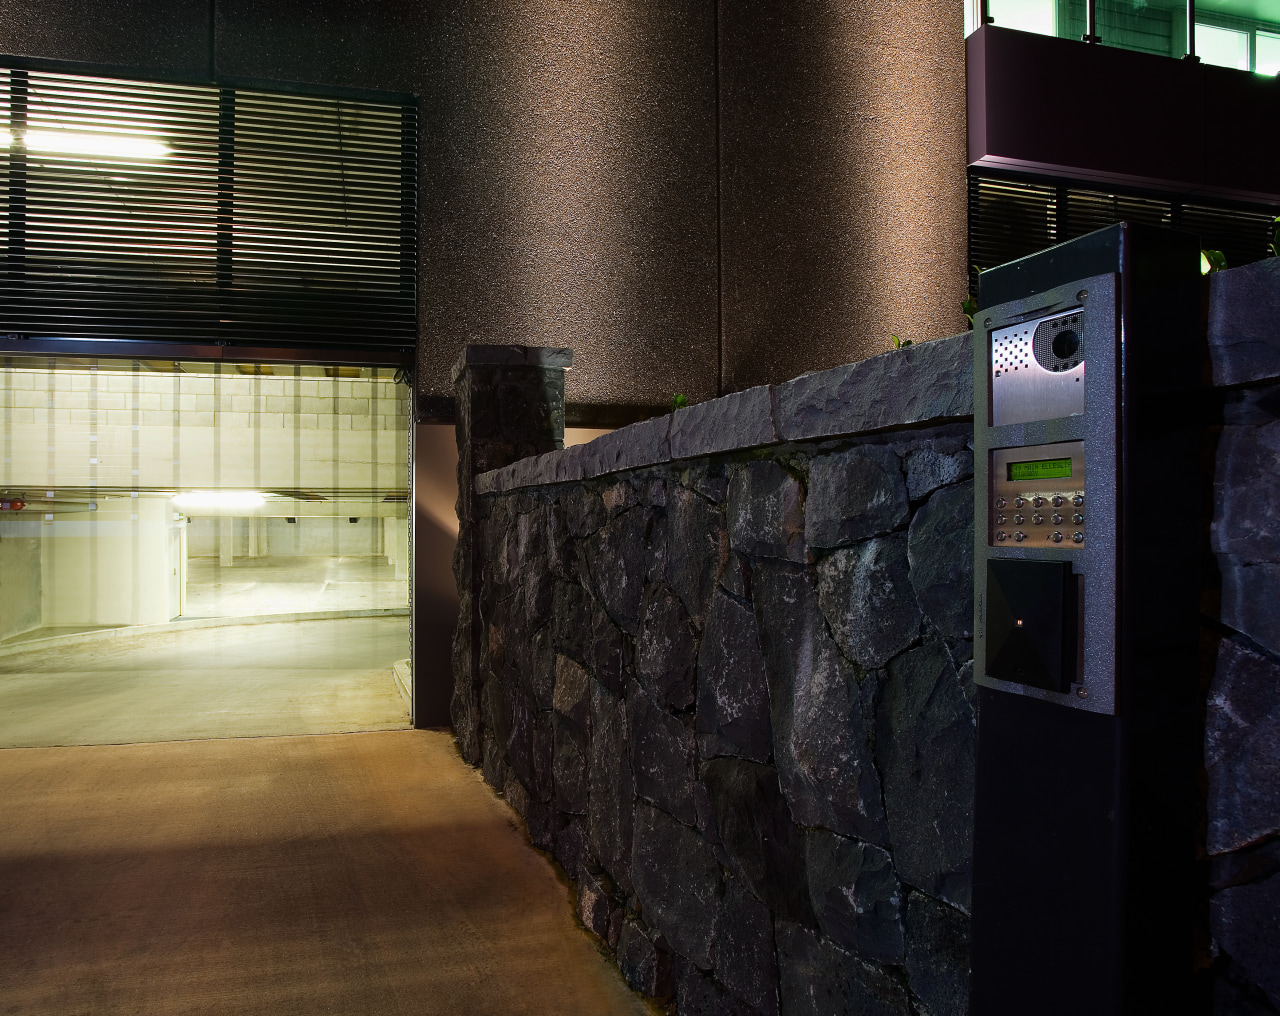 A view of the security system from Integrated wall, black